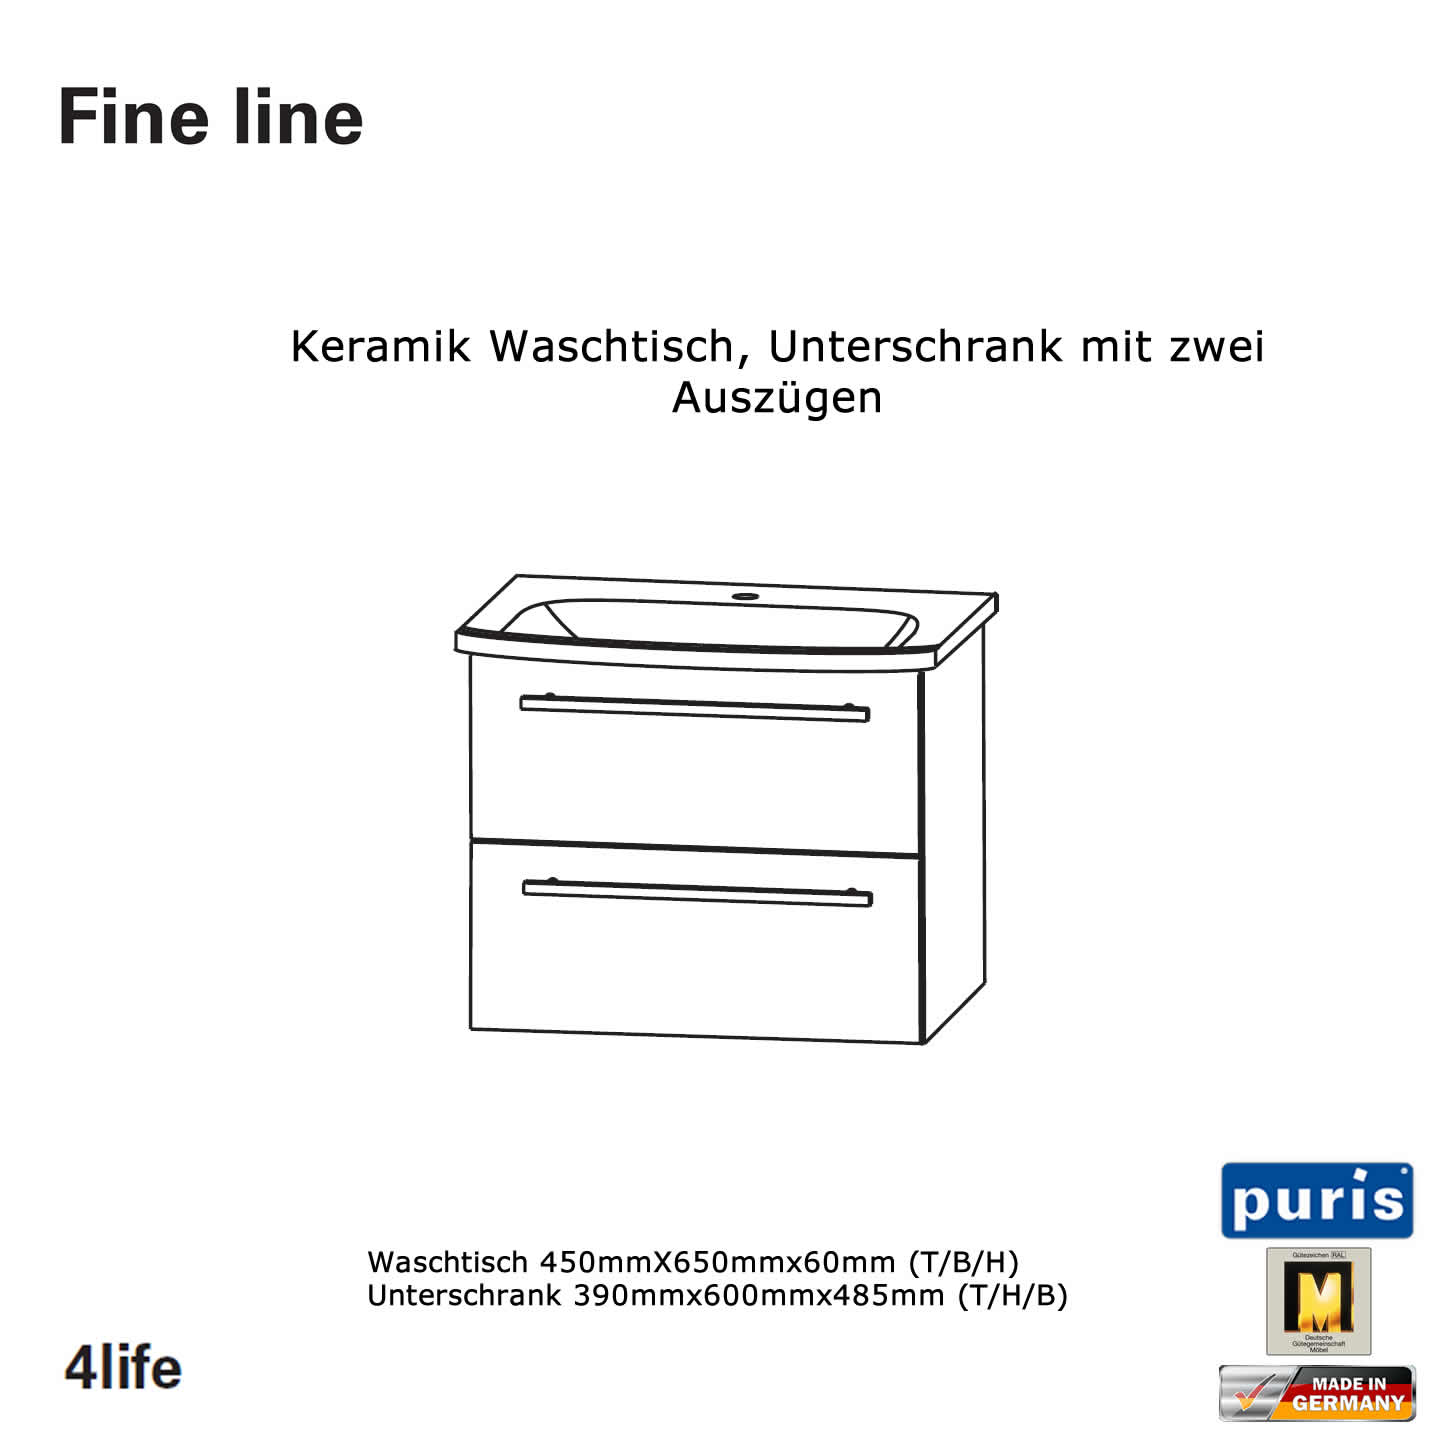 puris fine line keramik waschtisch set 60 cm impulsbad. Black Bedroom Furniture Sets. Home Design Ideas